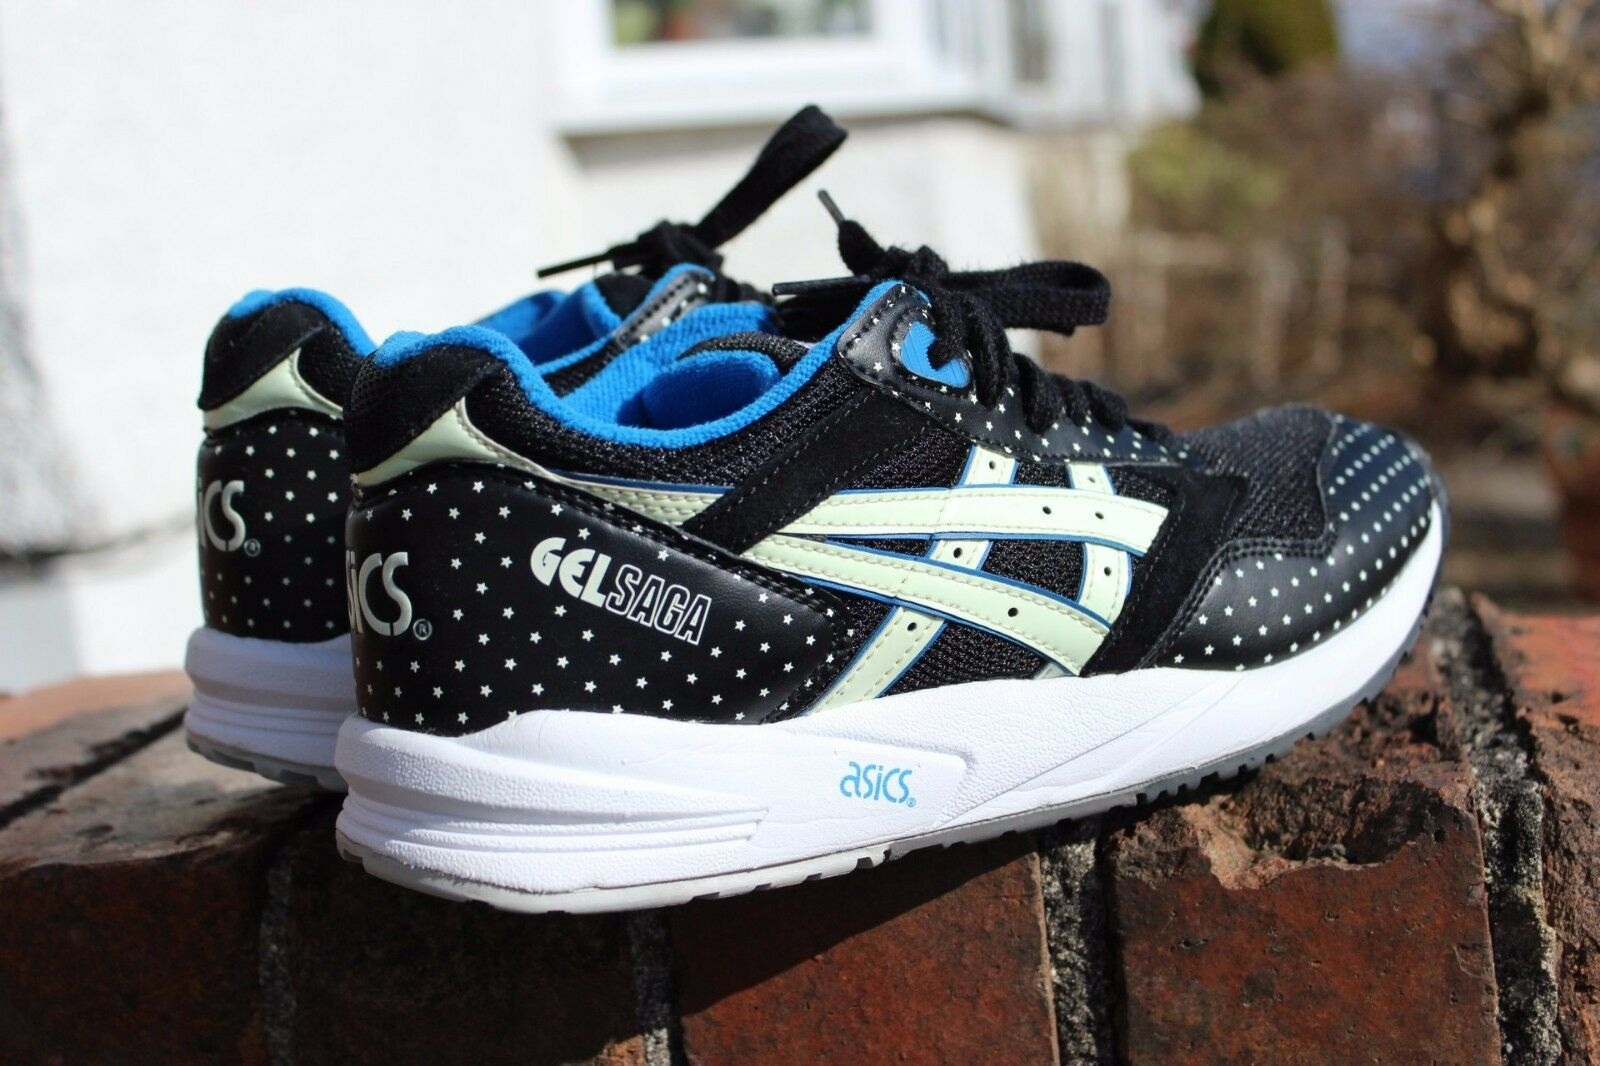 Asics Gel Saga Glow in The Dark Trainers Noir H4A0N6, 25.25CM, 40 EU, 7 US